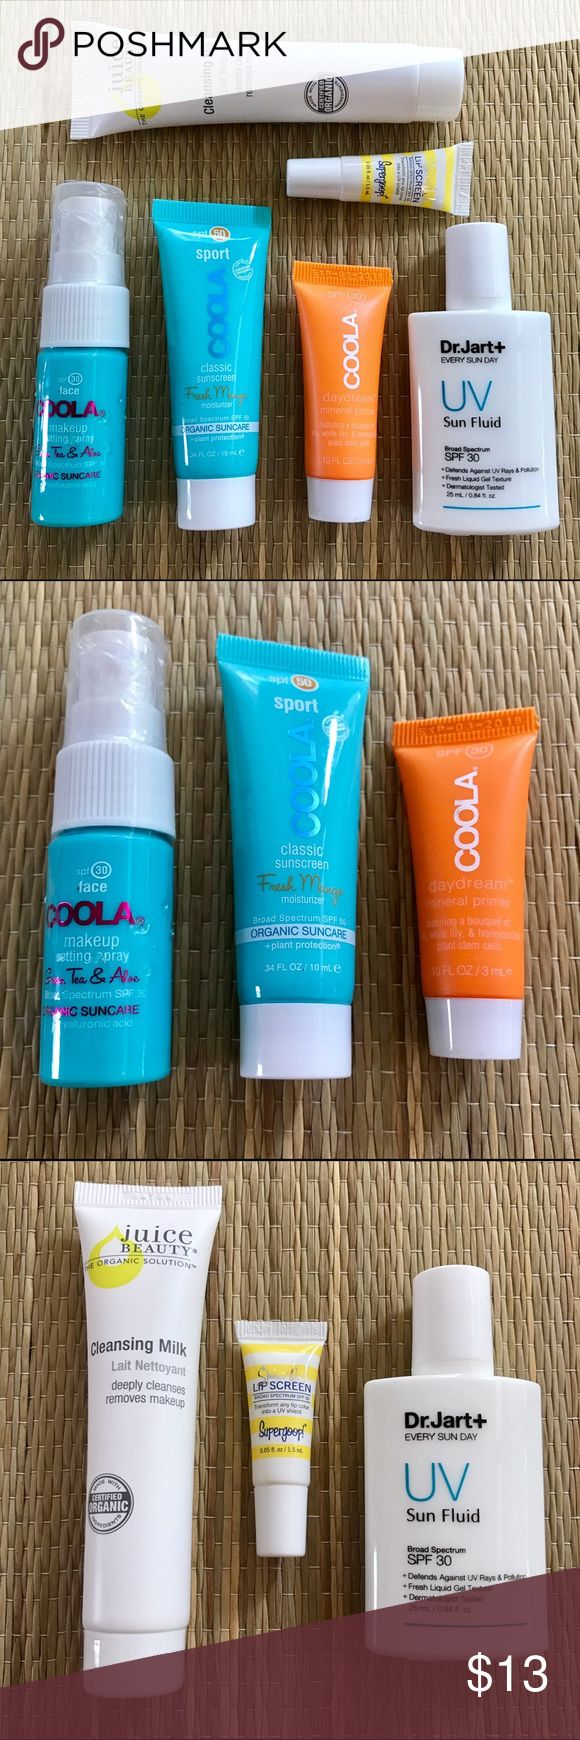 6 Piece Sun and Skin Care Sample Set w/ Bonus Soap 6 piece set of premium sun and skin care products in sample sizes with bonus Lush soap. All items new and unopened. Perfect for travel! Includes: Coola SPF 30 Makeup Setting Spray (.34 fl oz), SPF 50 Sport Mango Sunscreen (.34 fl oz), and SPF 30 Daydream Mineral Primer (.10 fl oz), Dr. Jart SPF 30 UV Sun Fluid (.84 fl oz), Supergoop SPF 50 Lip Screen (.05 fl oz), and Juice Beauty Cleansing Milk (.50 fl oz). Plus bonus sample of Lush Karma…